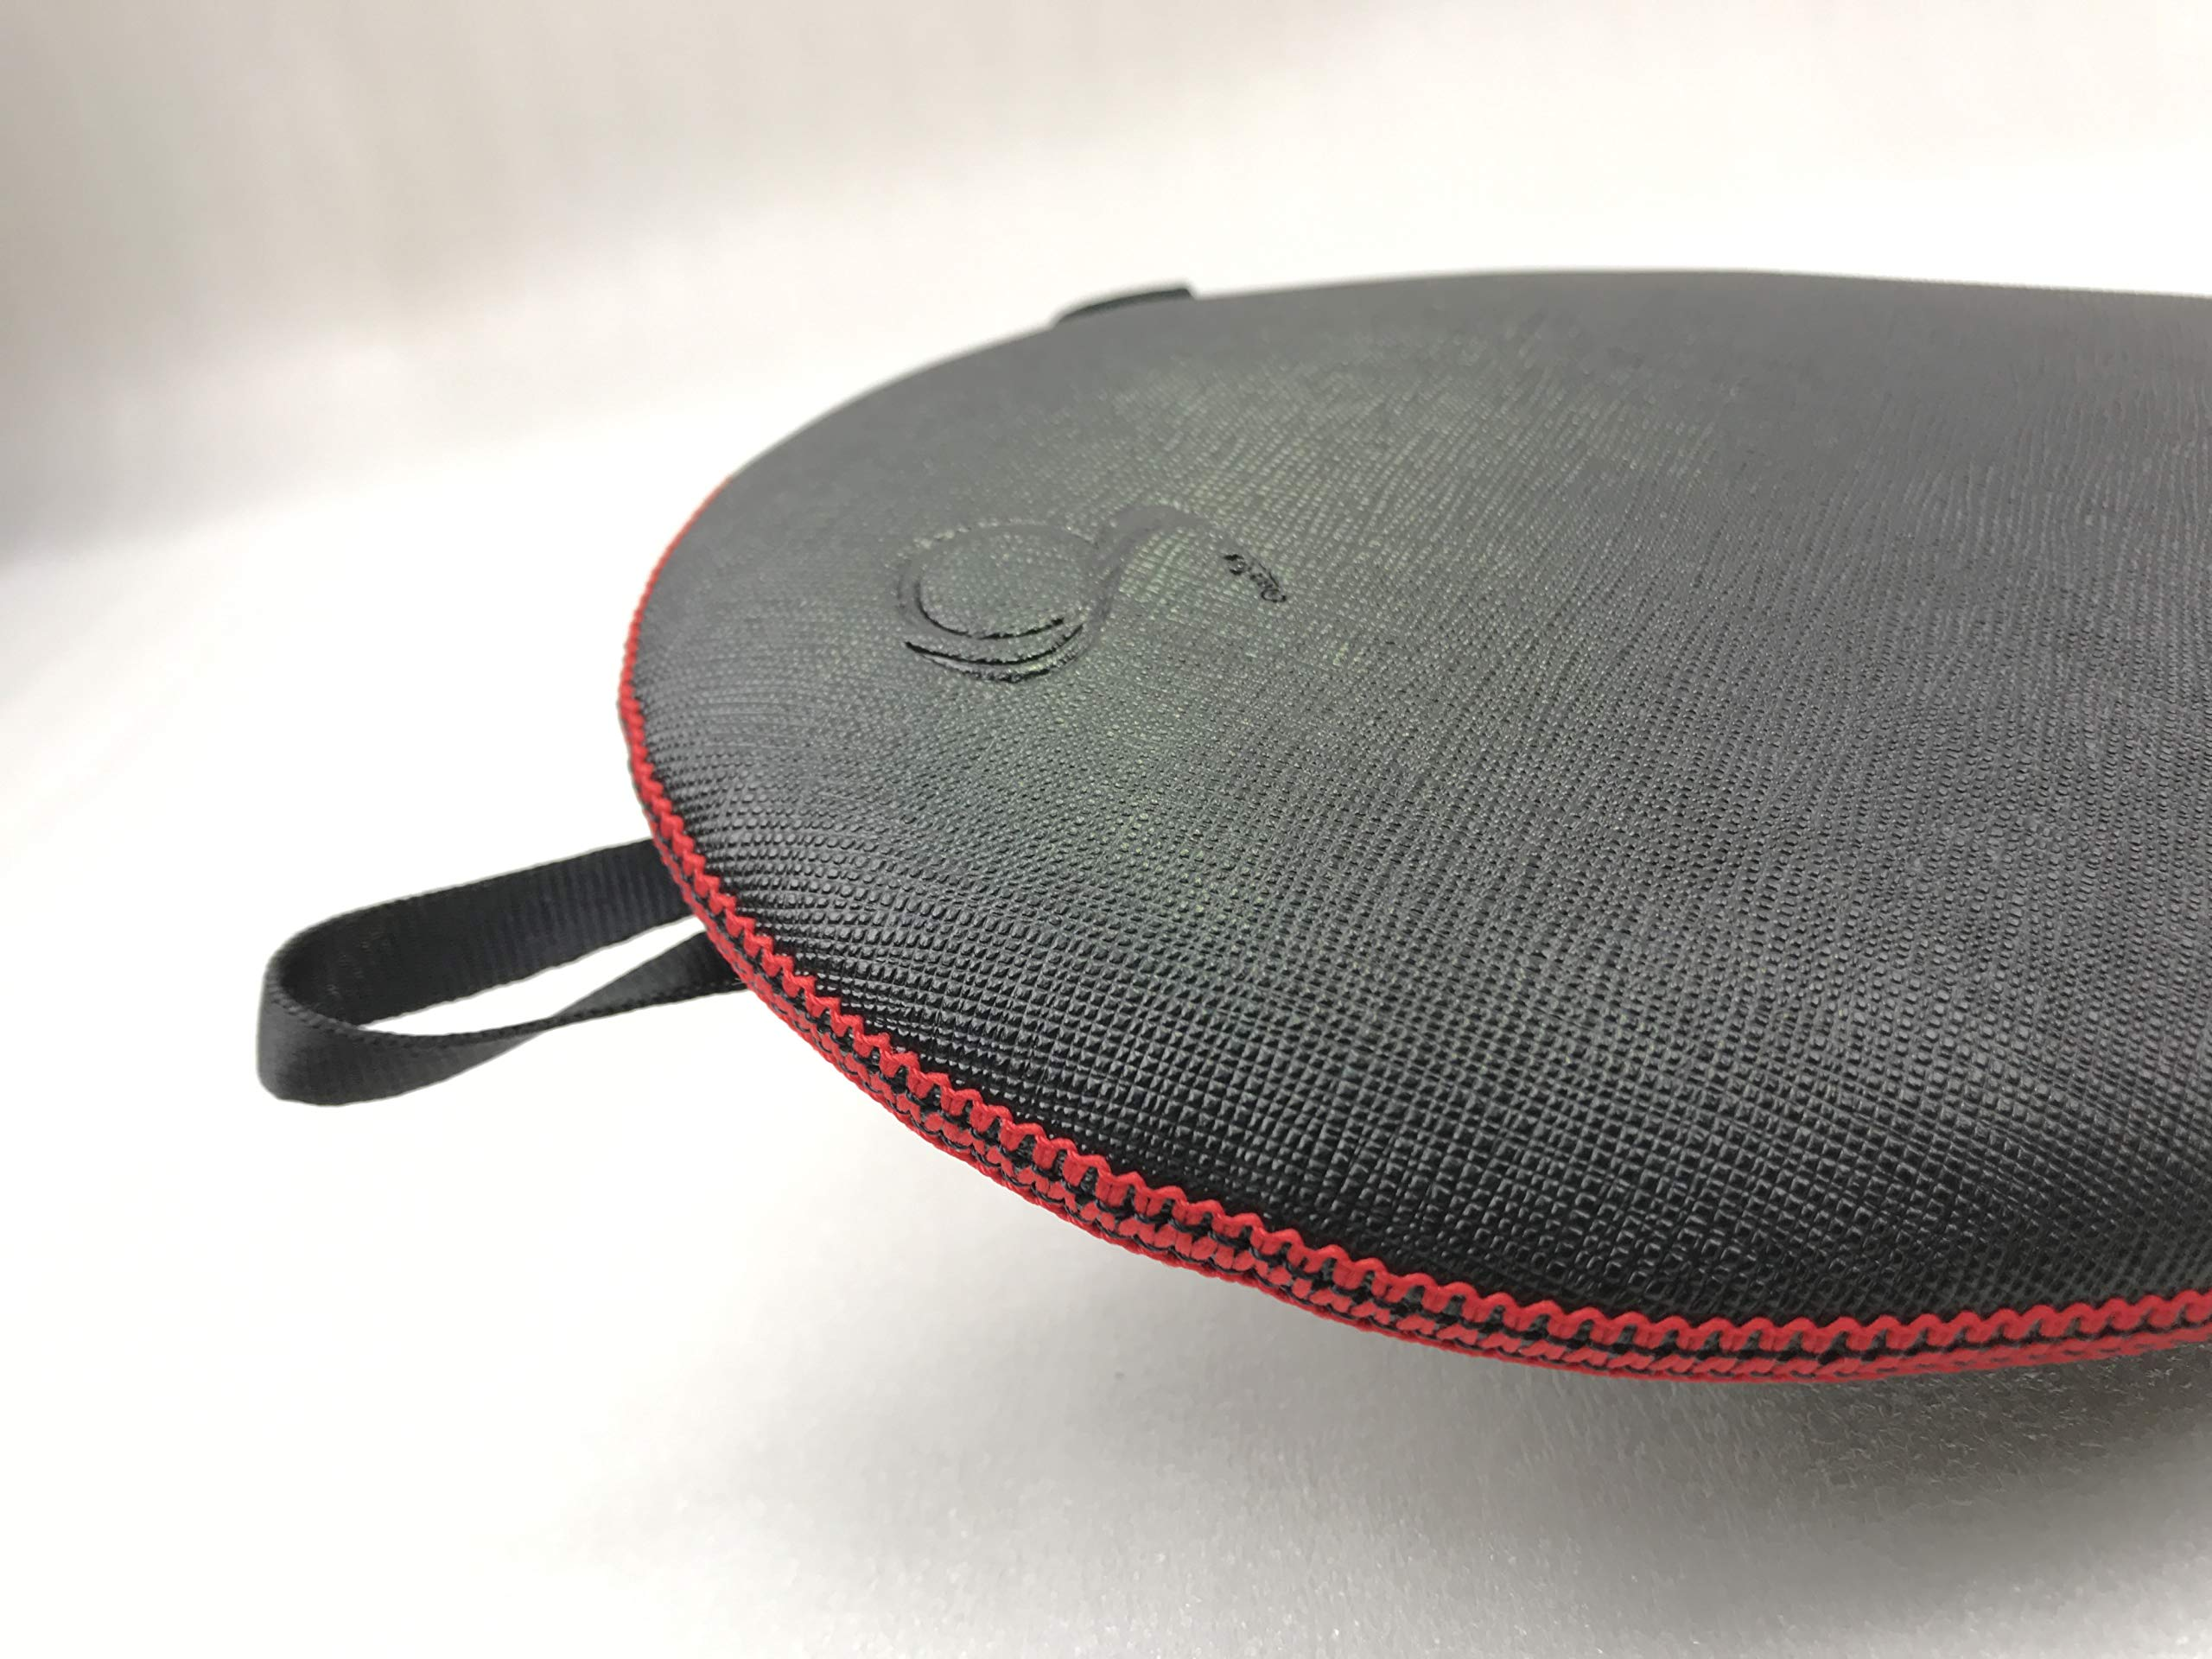 ONEJOY Ping Pong, Table Tennis Racquet Bag,Case,Cover with Zipper AJ61,Loop to Hook, Full Cover 28cm x 17cm for 1 Racquet/Racket/Paddle. by ONEJOY (Image #5)